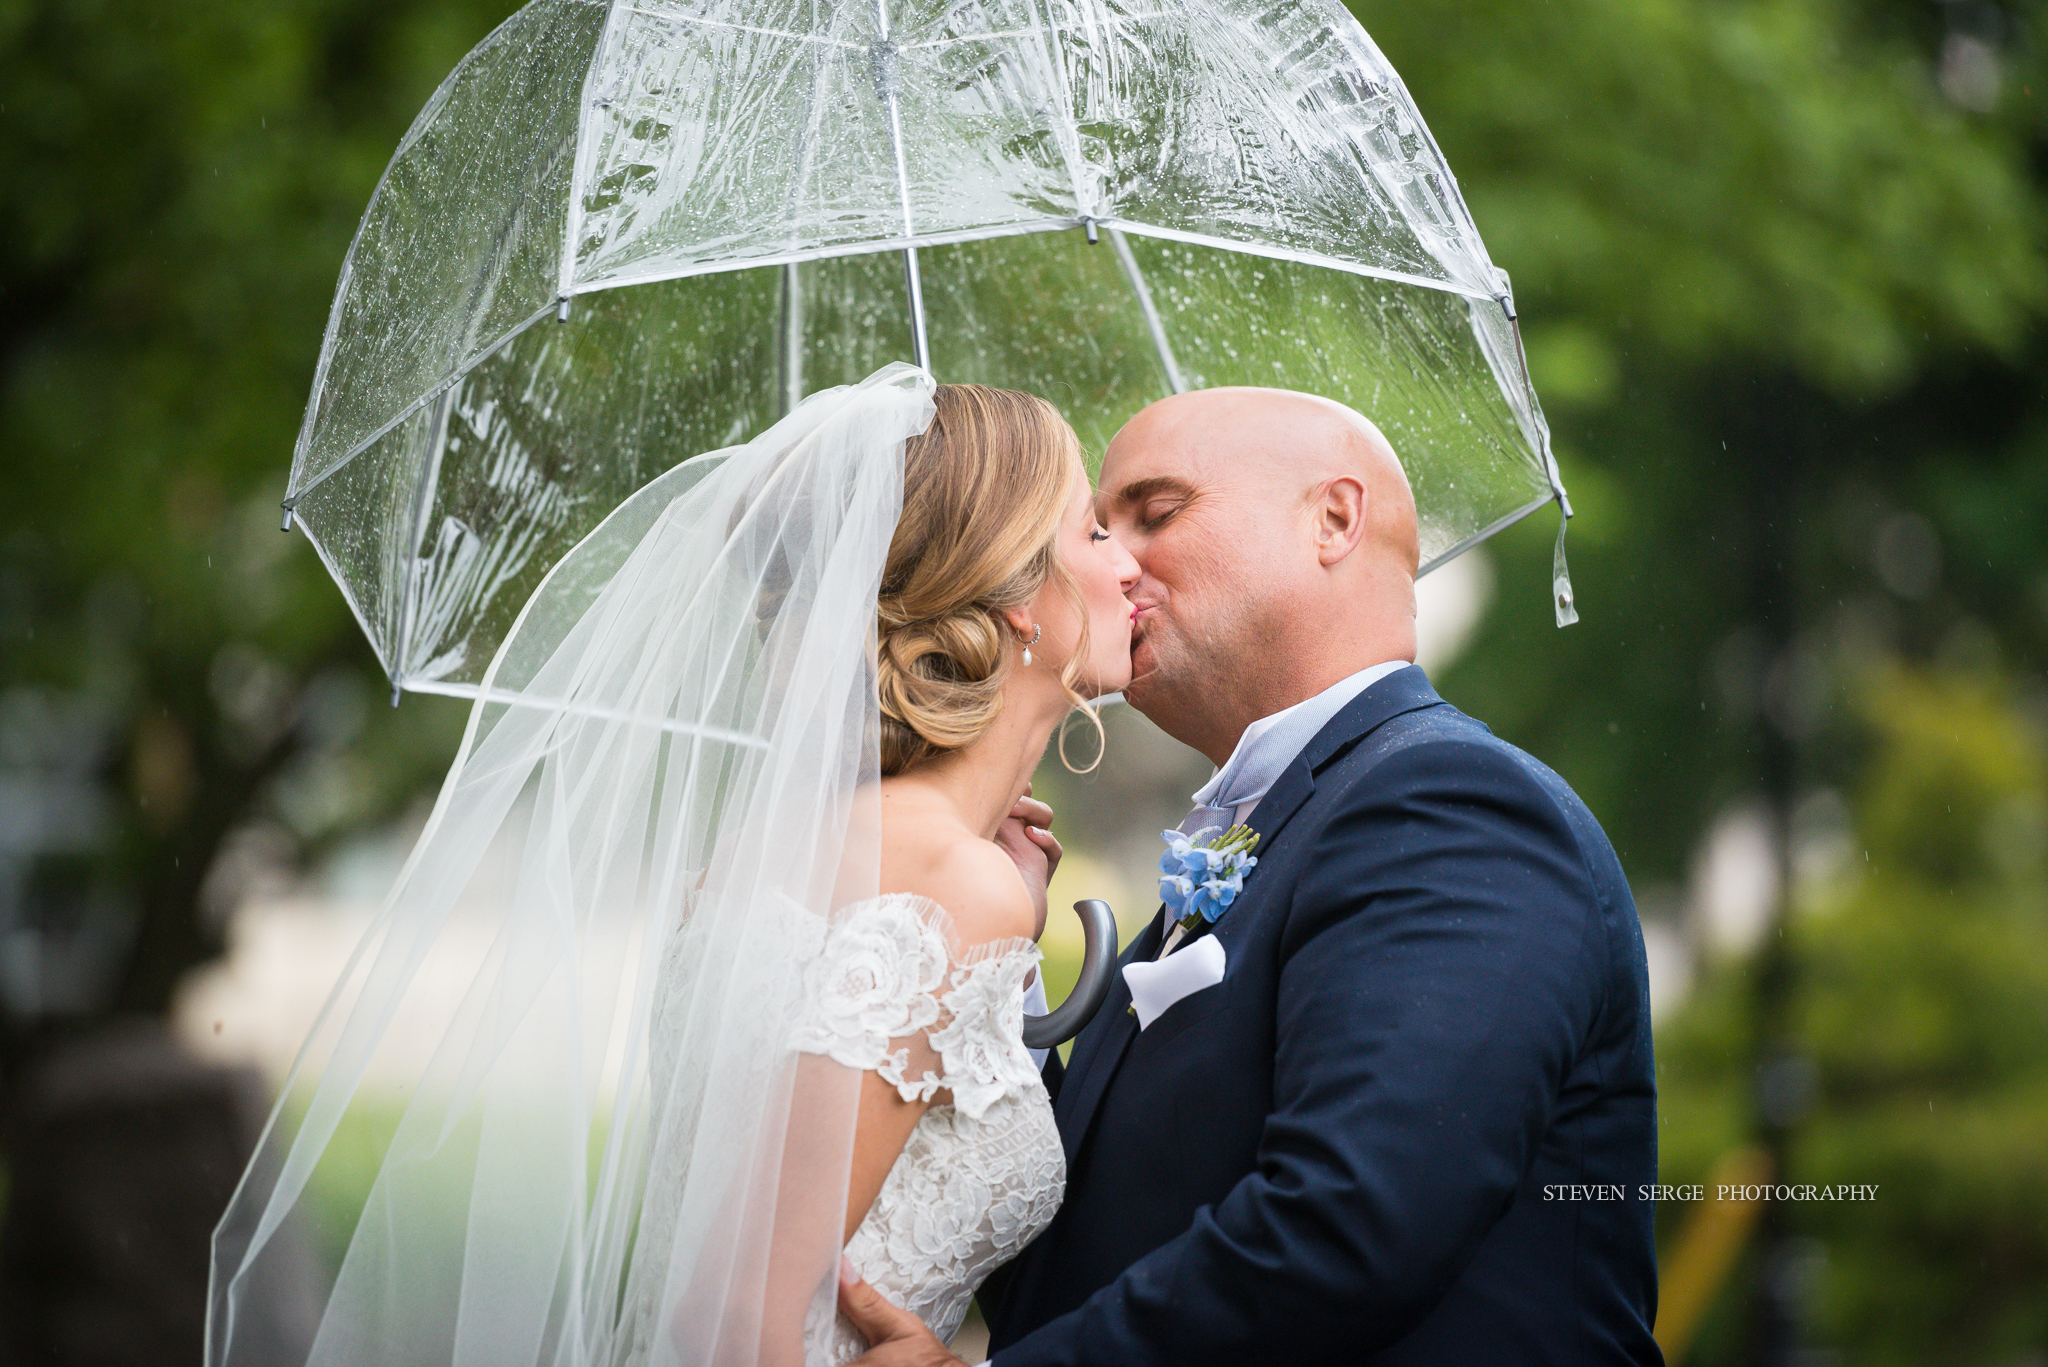 steph-scranton-wedding-steven-serge-photography-28.jpg